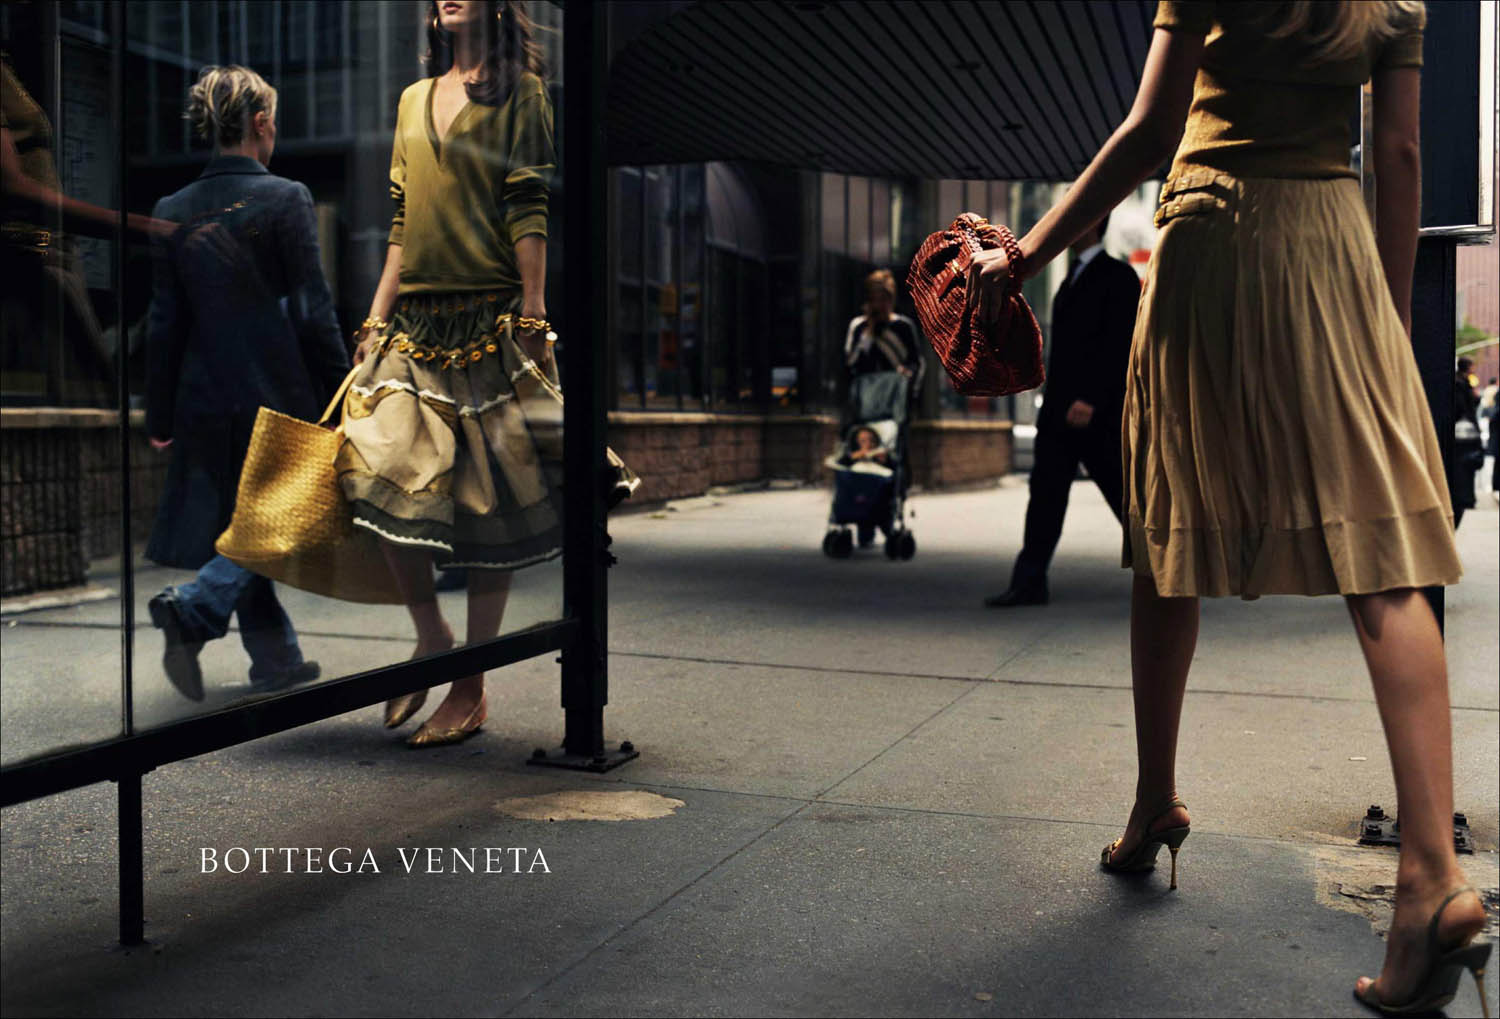 Bottega Veneta Fall/Winter 2004 campaign (photography: Robin Broadbent)